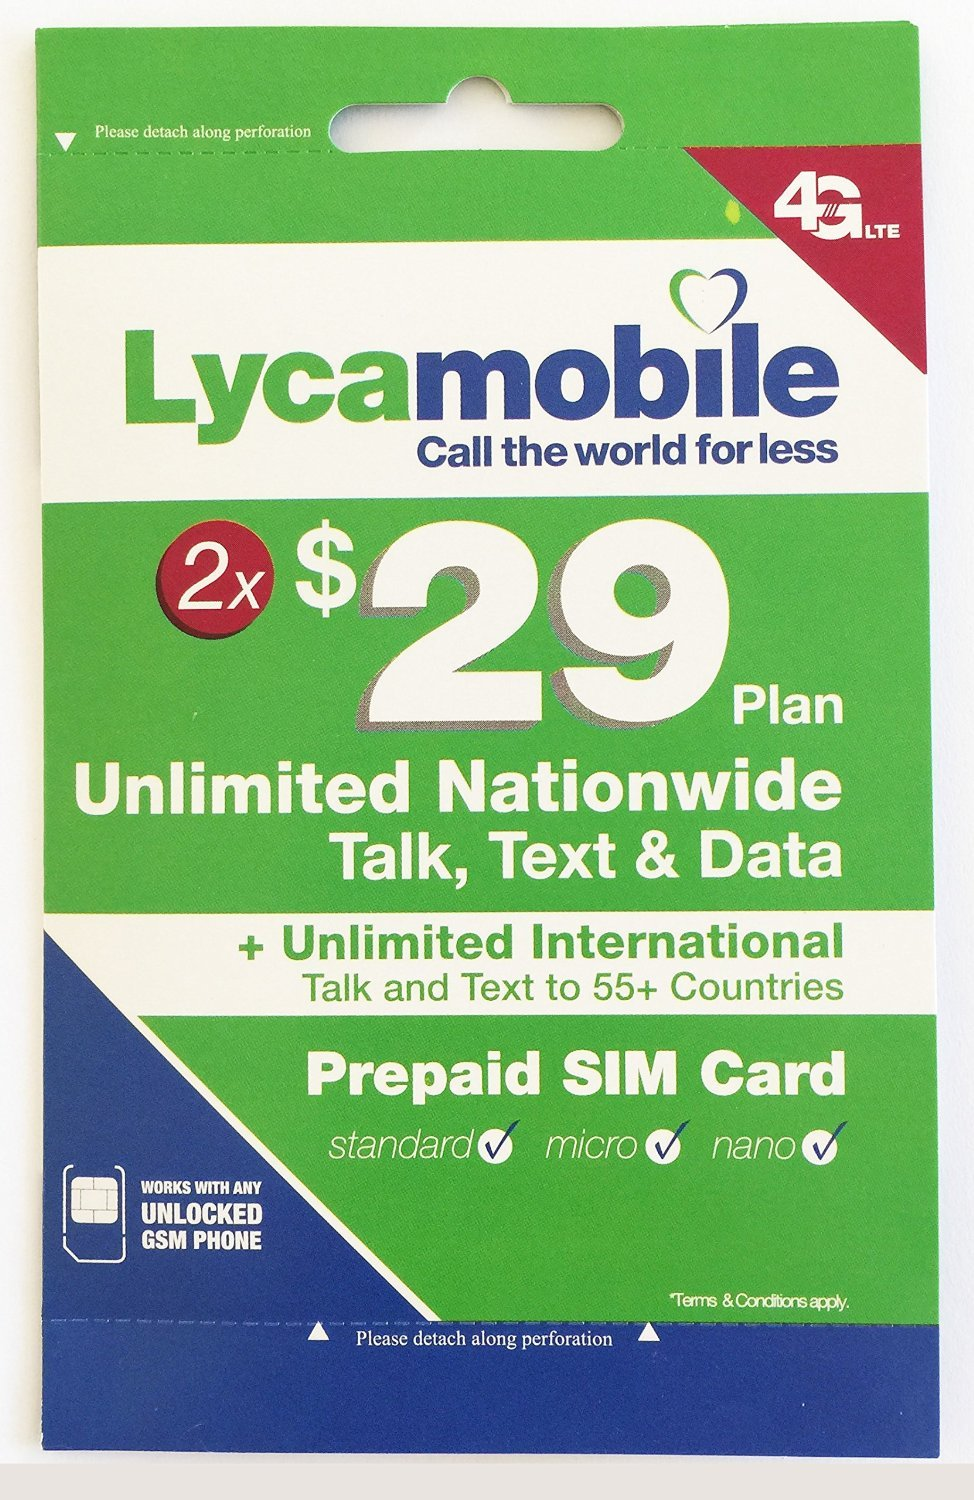 Lycamobile $29 Plan Preloaded Sim Cards Include 2 Month Service Plan by AH PREPAID